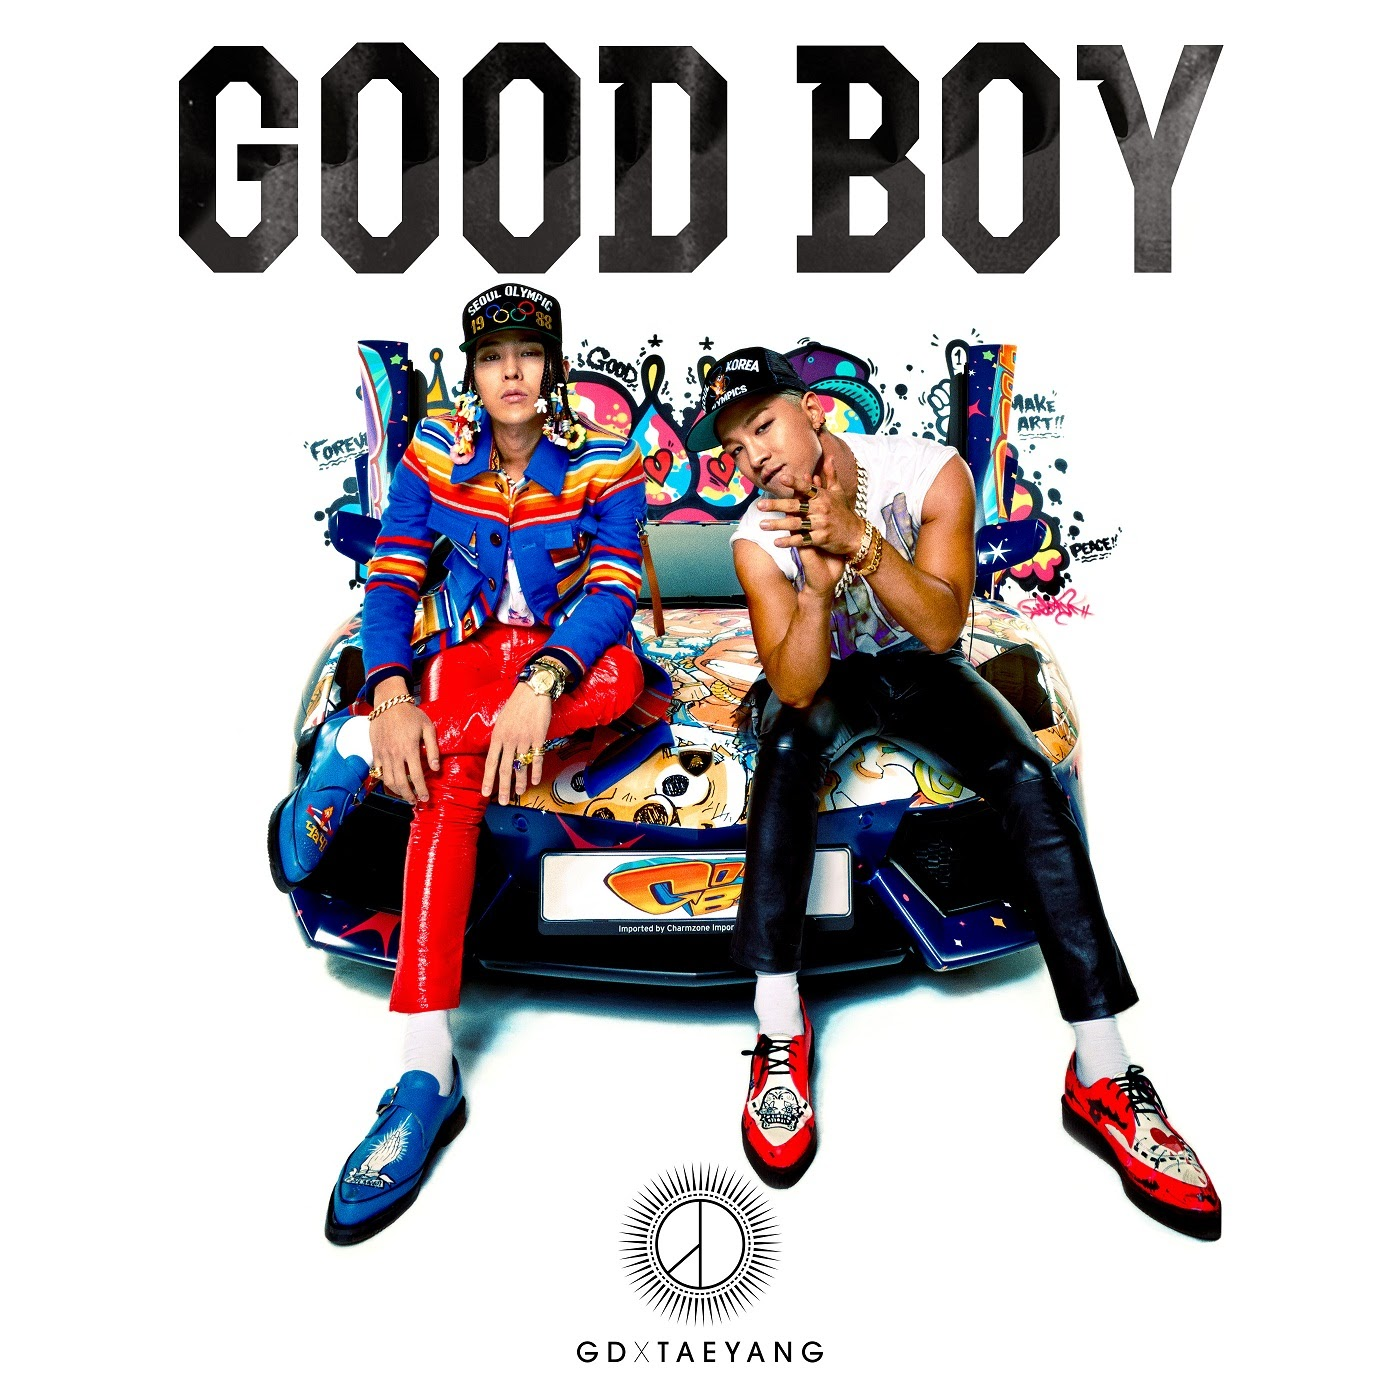 GD X TAEYANG GOOD BOY lyrics cover